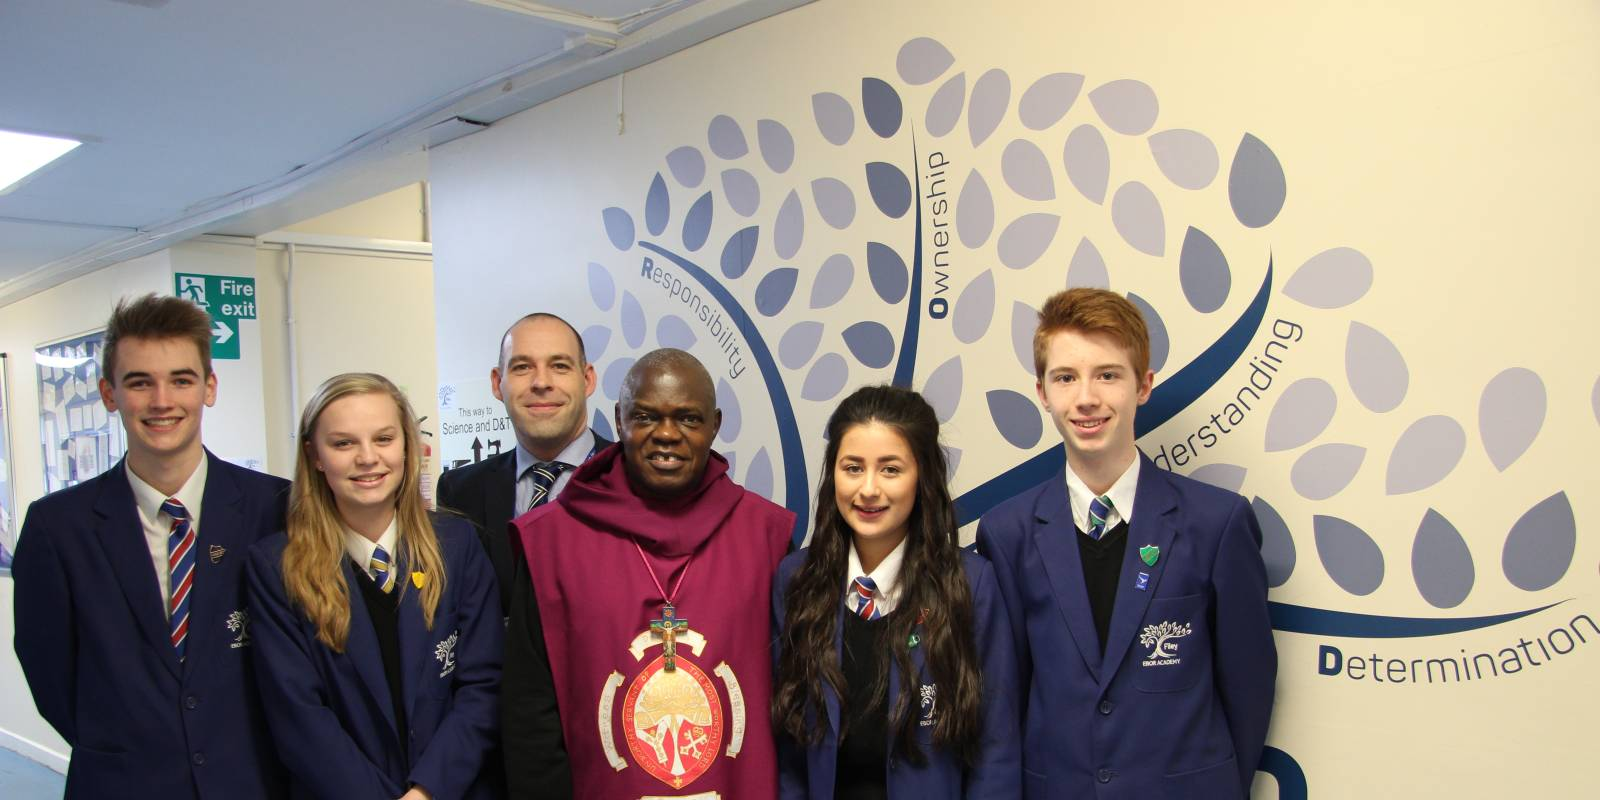 Archbishop of York standing with students in corridor